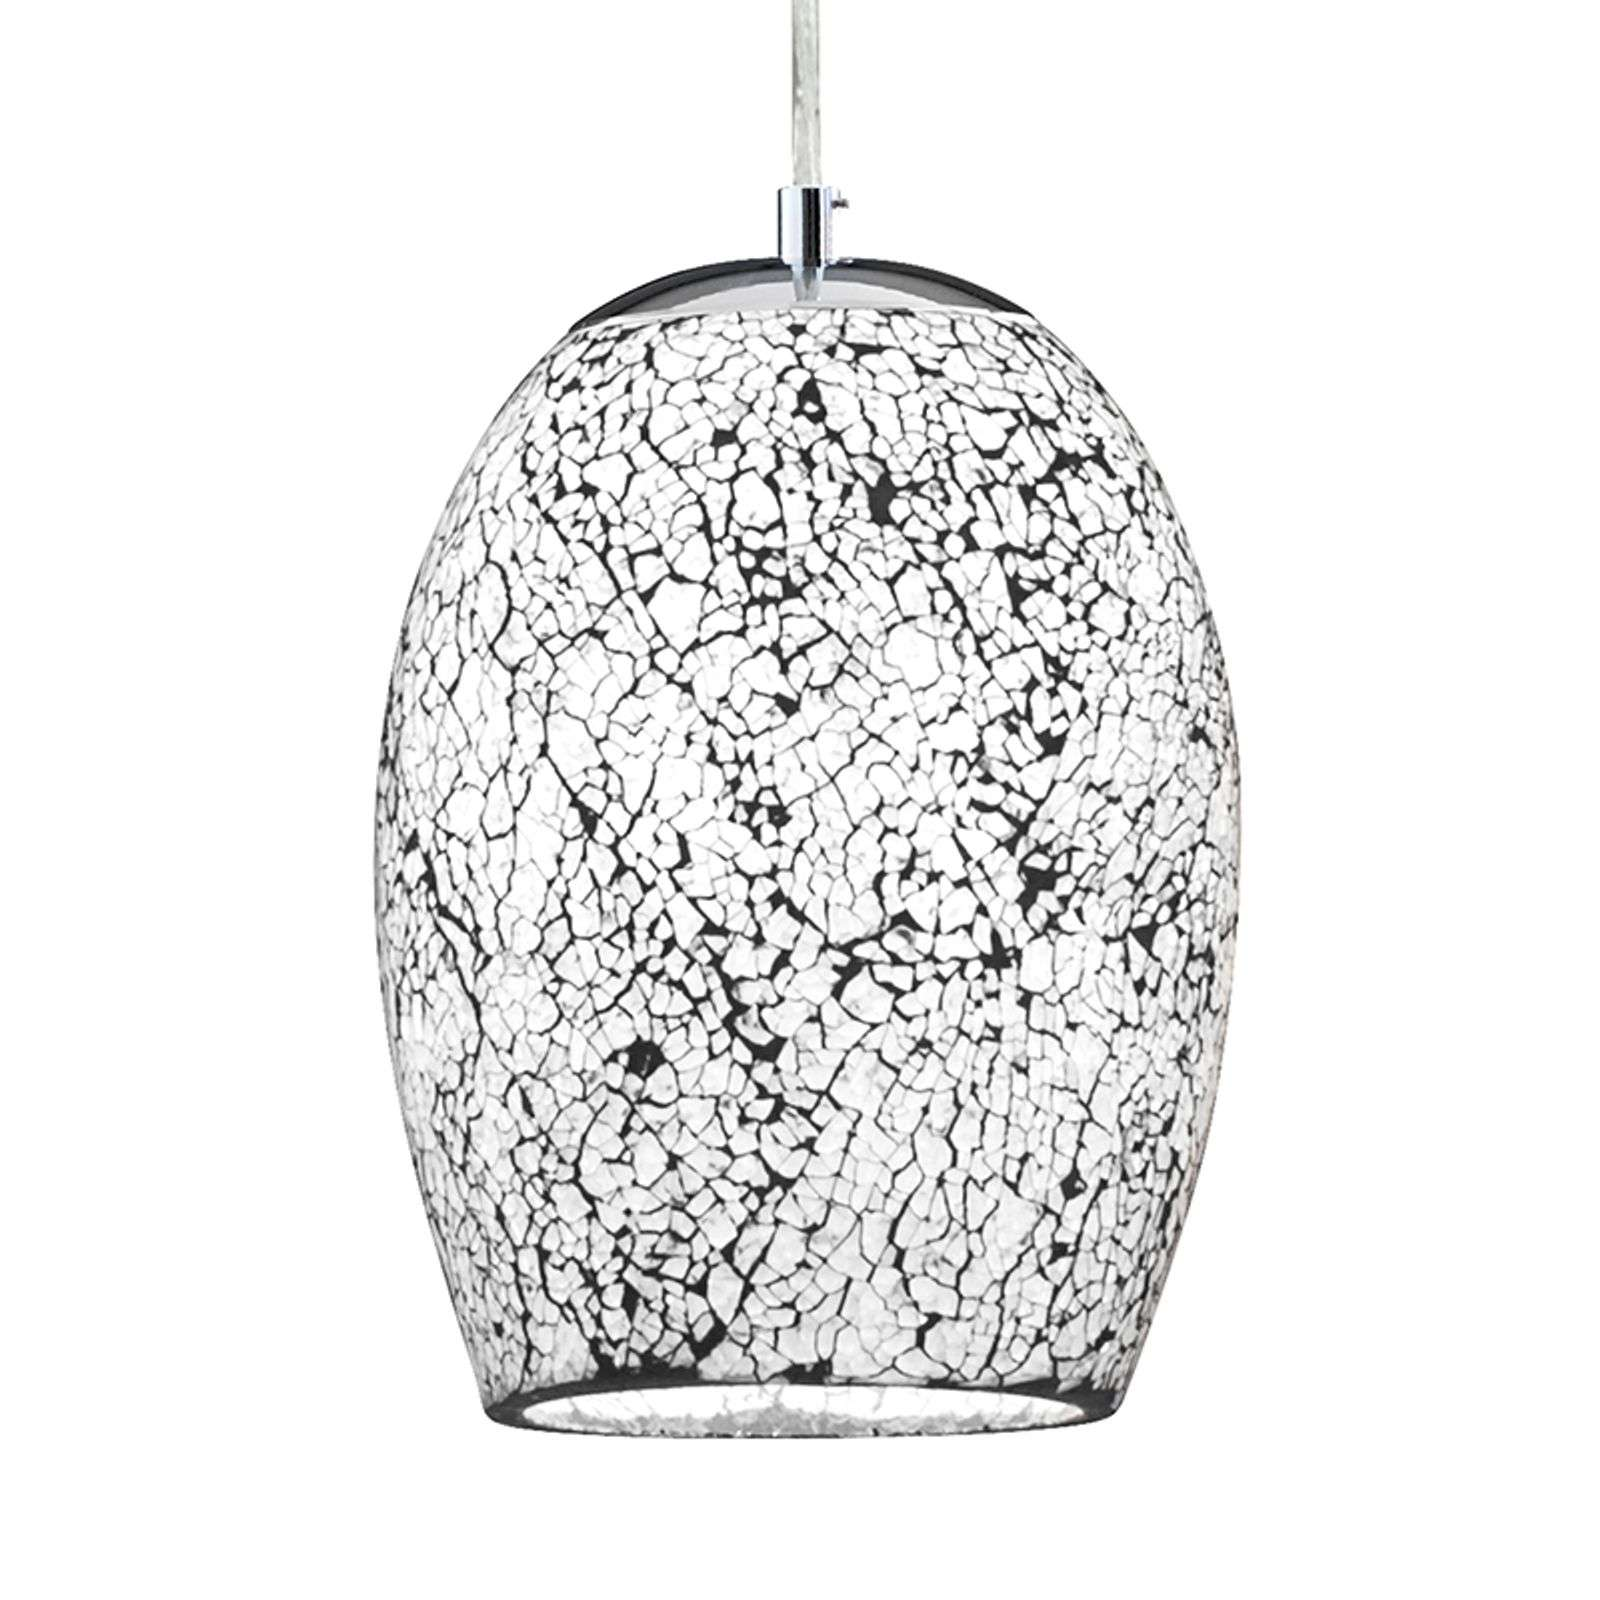 Witte chroom hanglamp Crackle